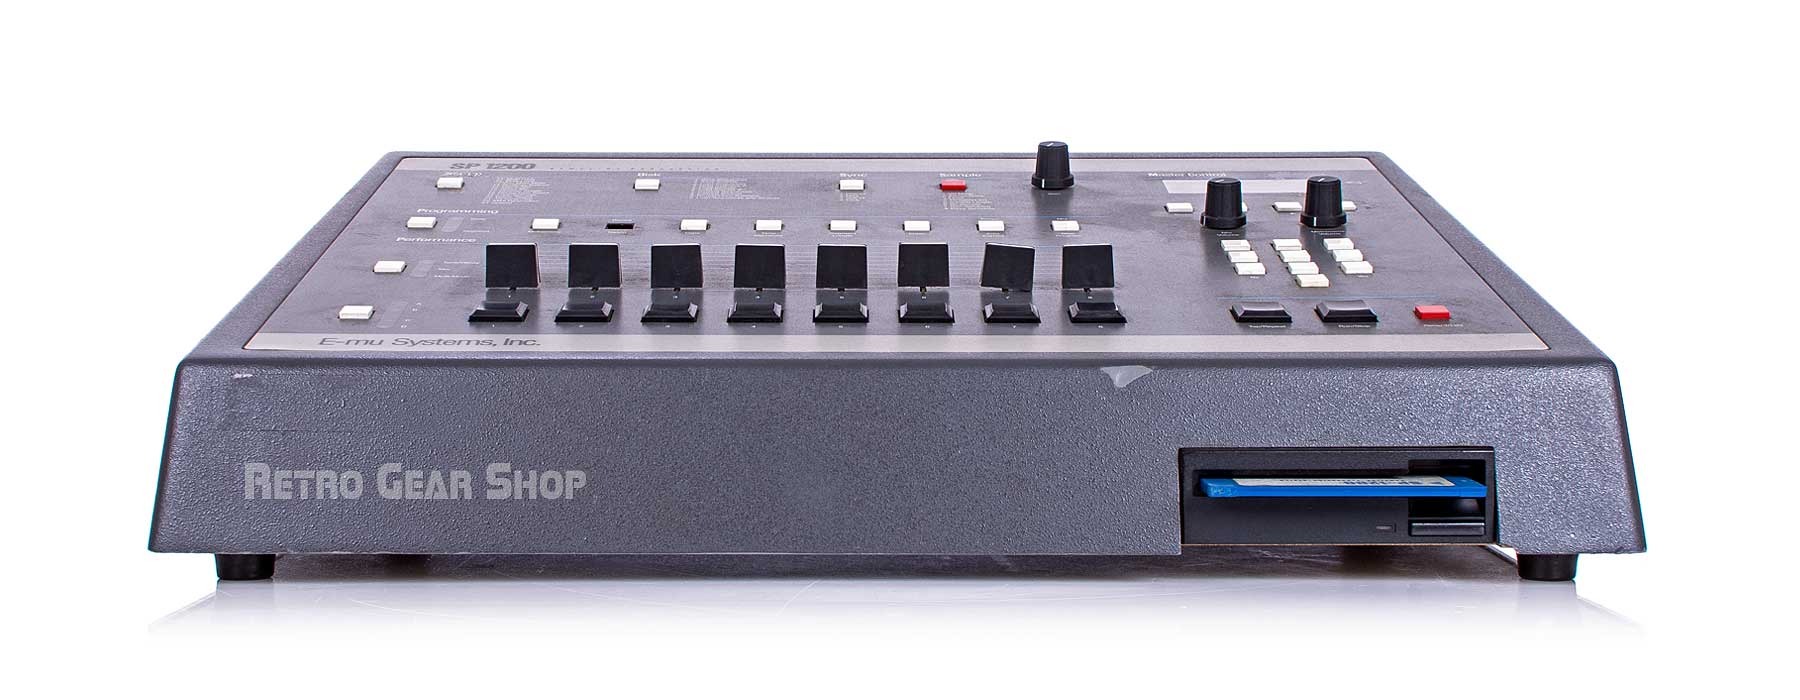 E-mu SP-1200 Original Gray Front